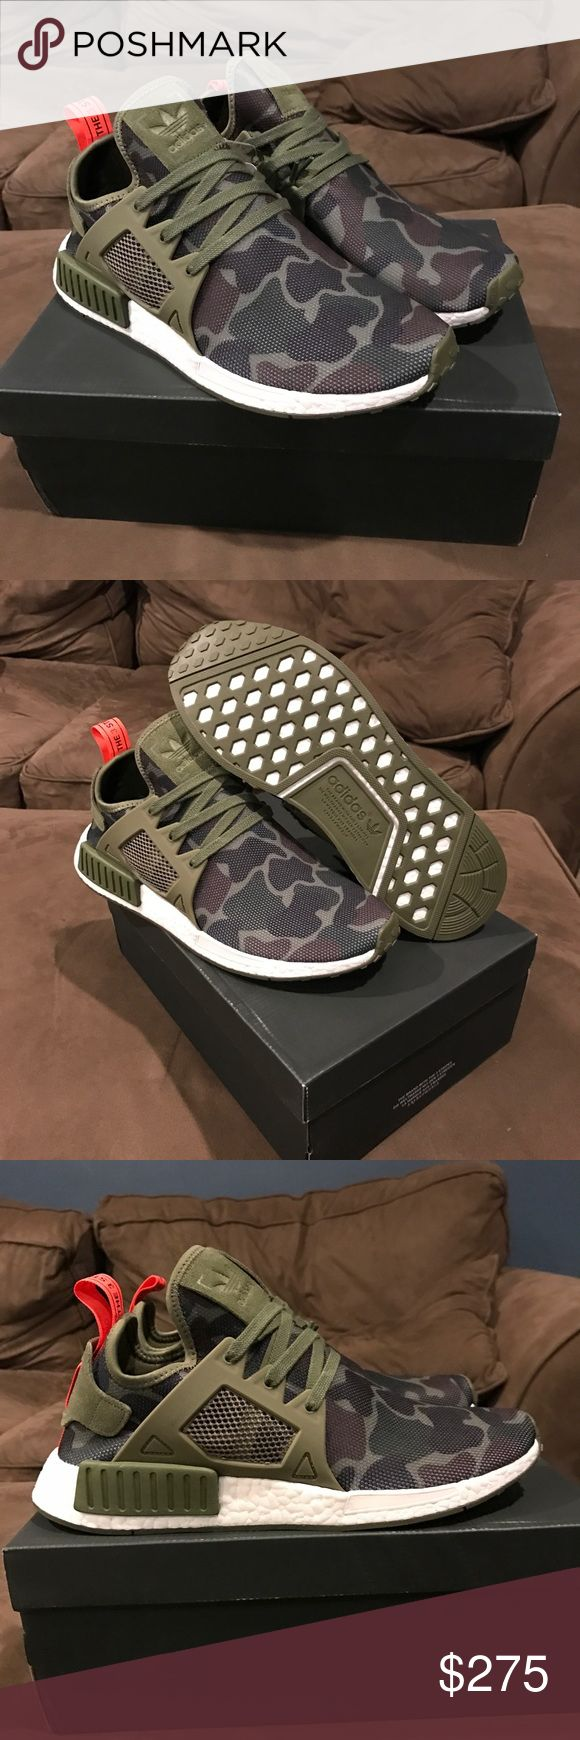 Adidas Camo NMDs *Exclusive* Adidas Camo NMDs *Exclusive* Adidas shoe Sold out everywhere and Deadstock. Size 10 BRAND NEW IN THE BOX. Make an offer before they're gone!!! Adidas Shoes Sneakers http://feedproxy.google.com/fashiongoshoes1